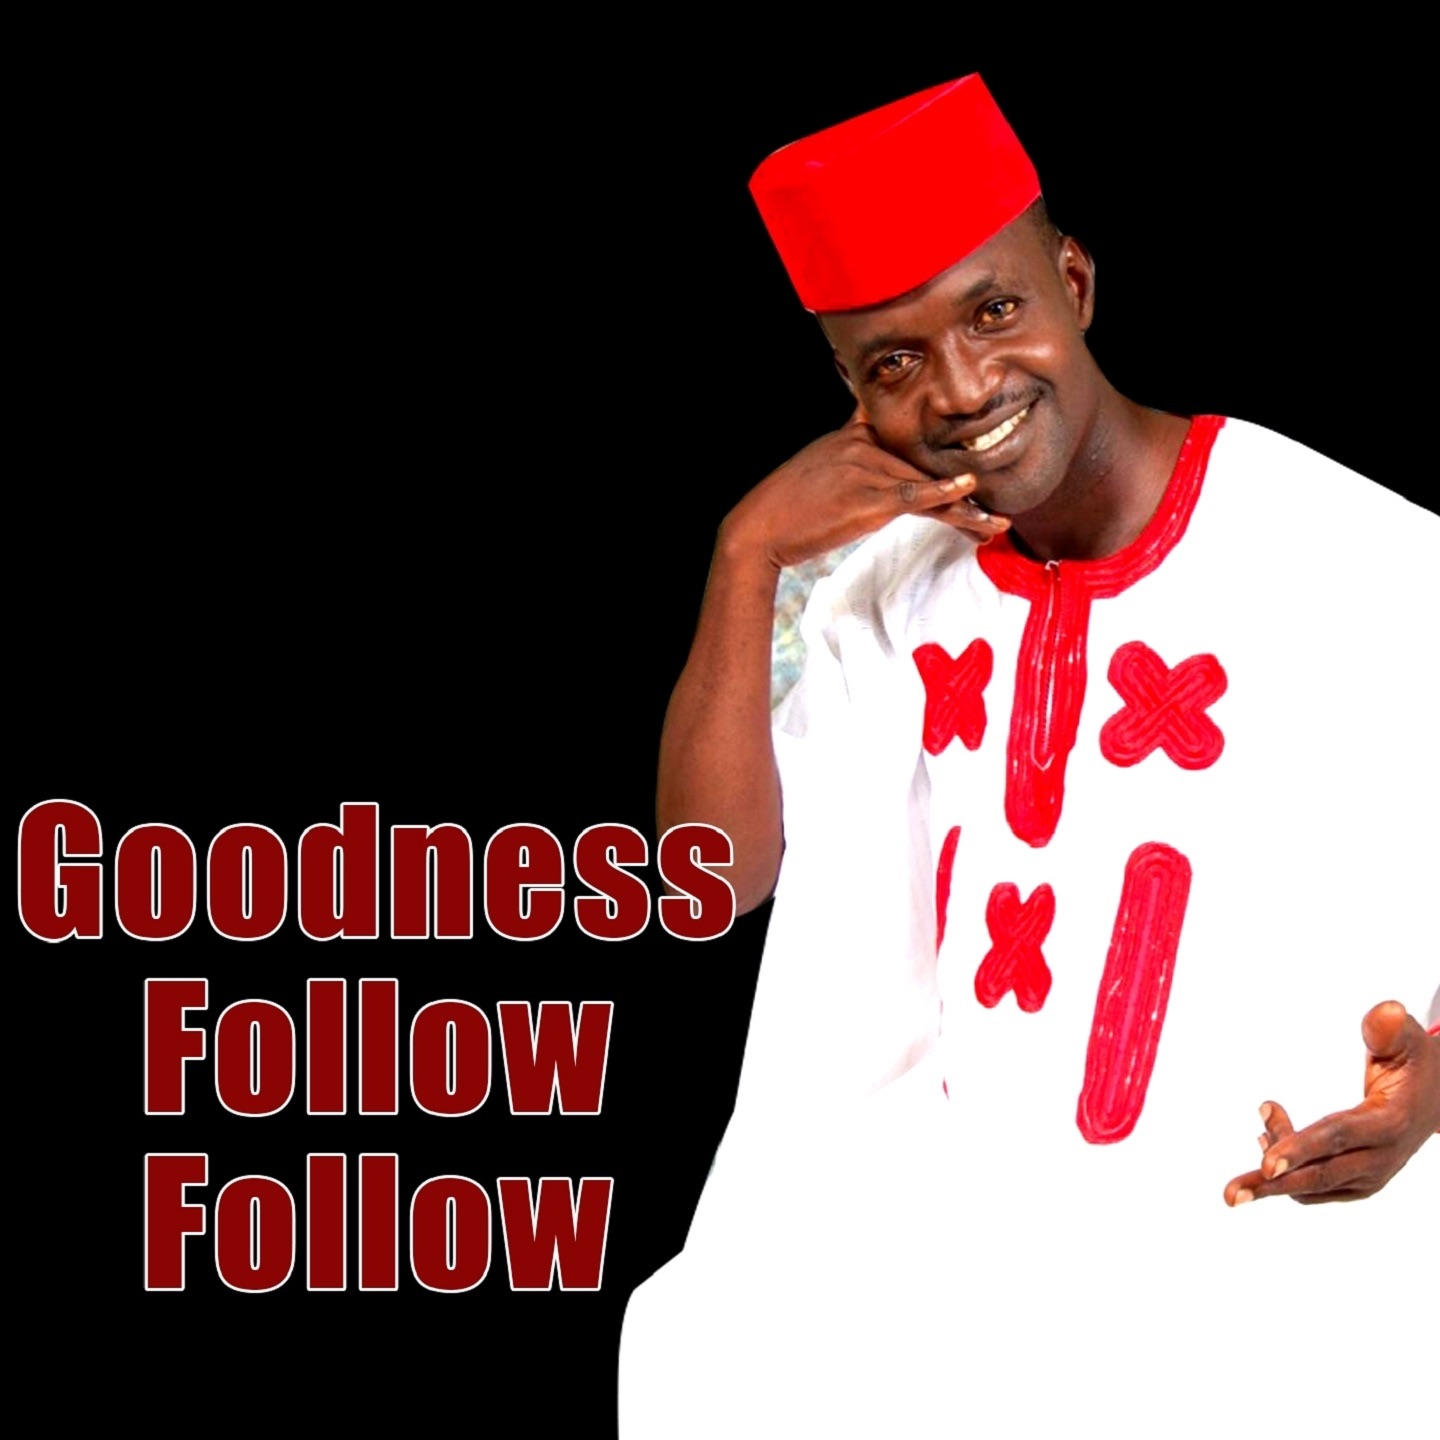 Goodness Follow Follow - Single